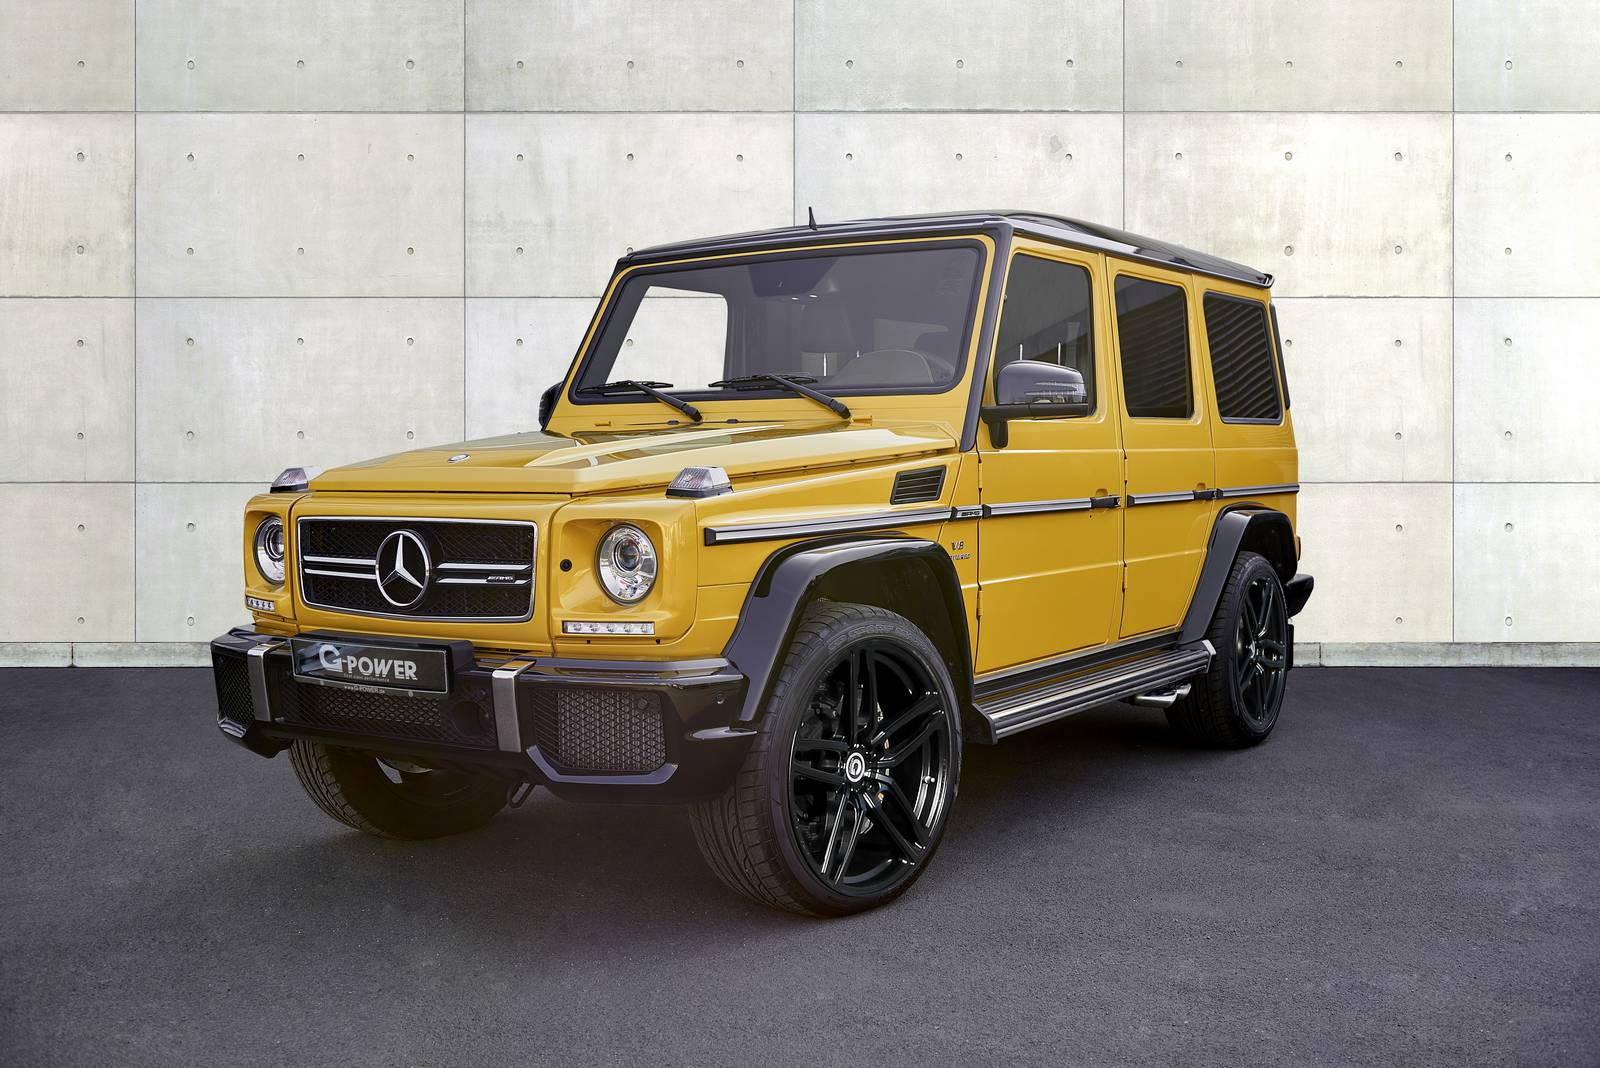 63 Power Wagon >> Official: G-Power Mercedes-Benz G63 AMG with 645hp - GTspirit